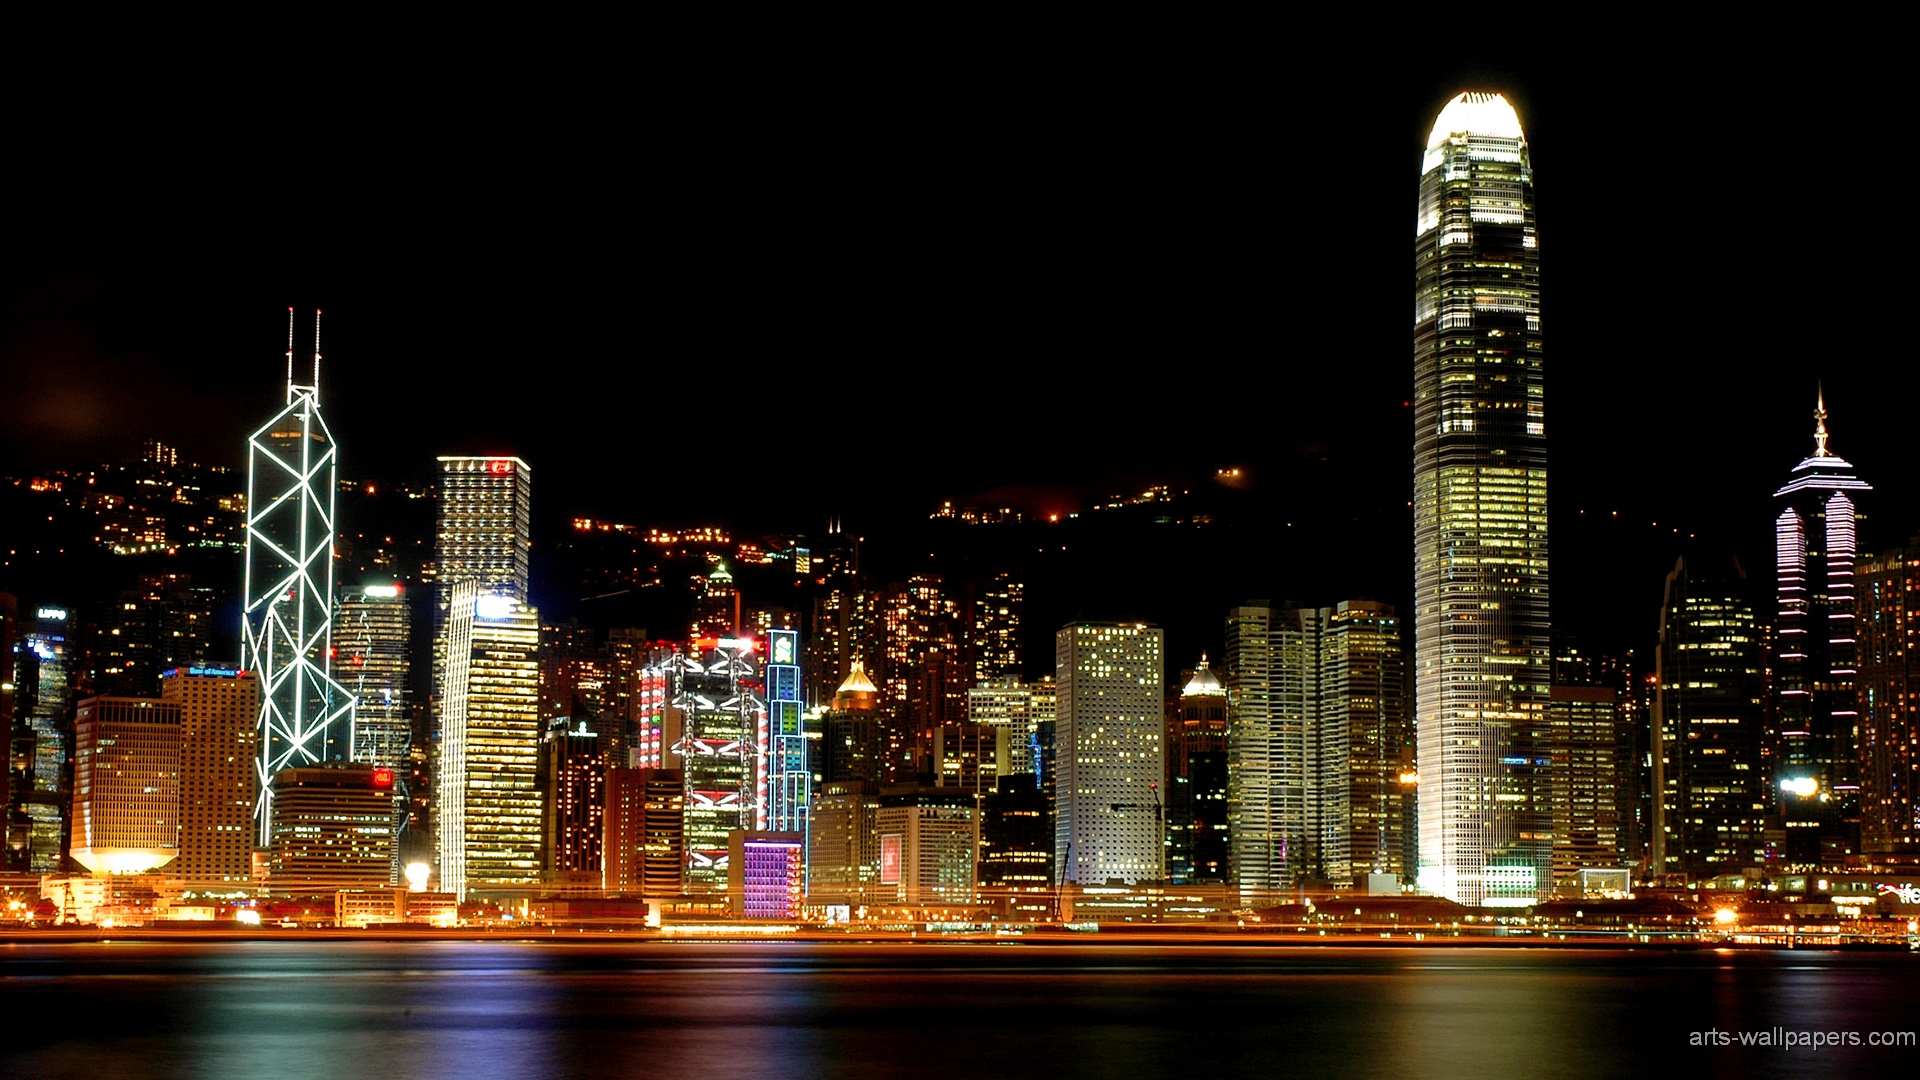 Wallpapers Prints Cityscapes HD Wallpapers Posters Cityscapes Wall 1920x1080